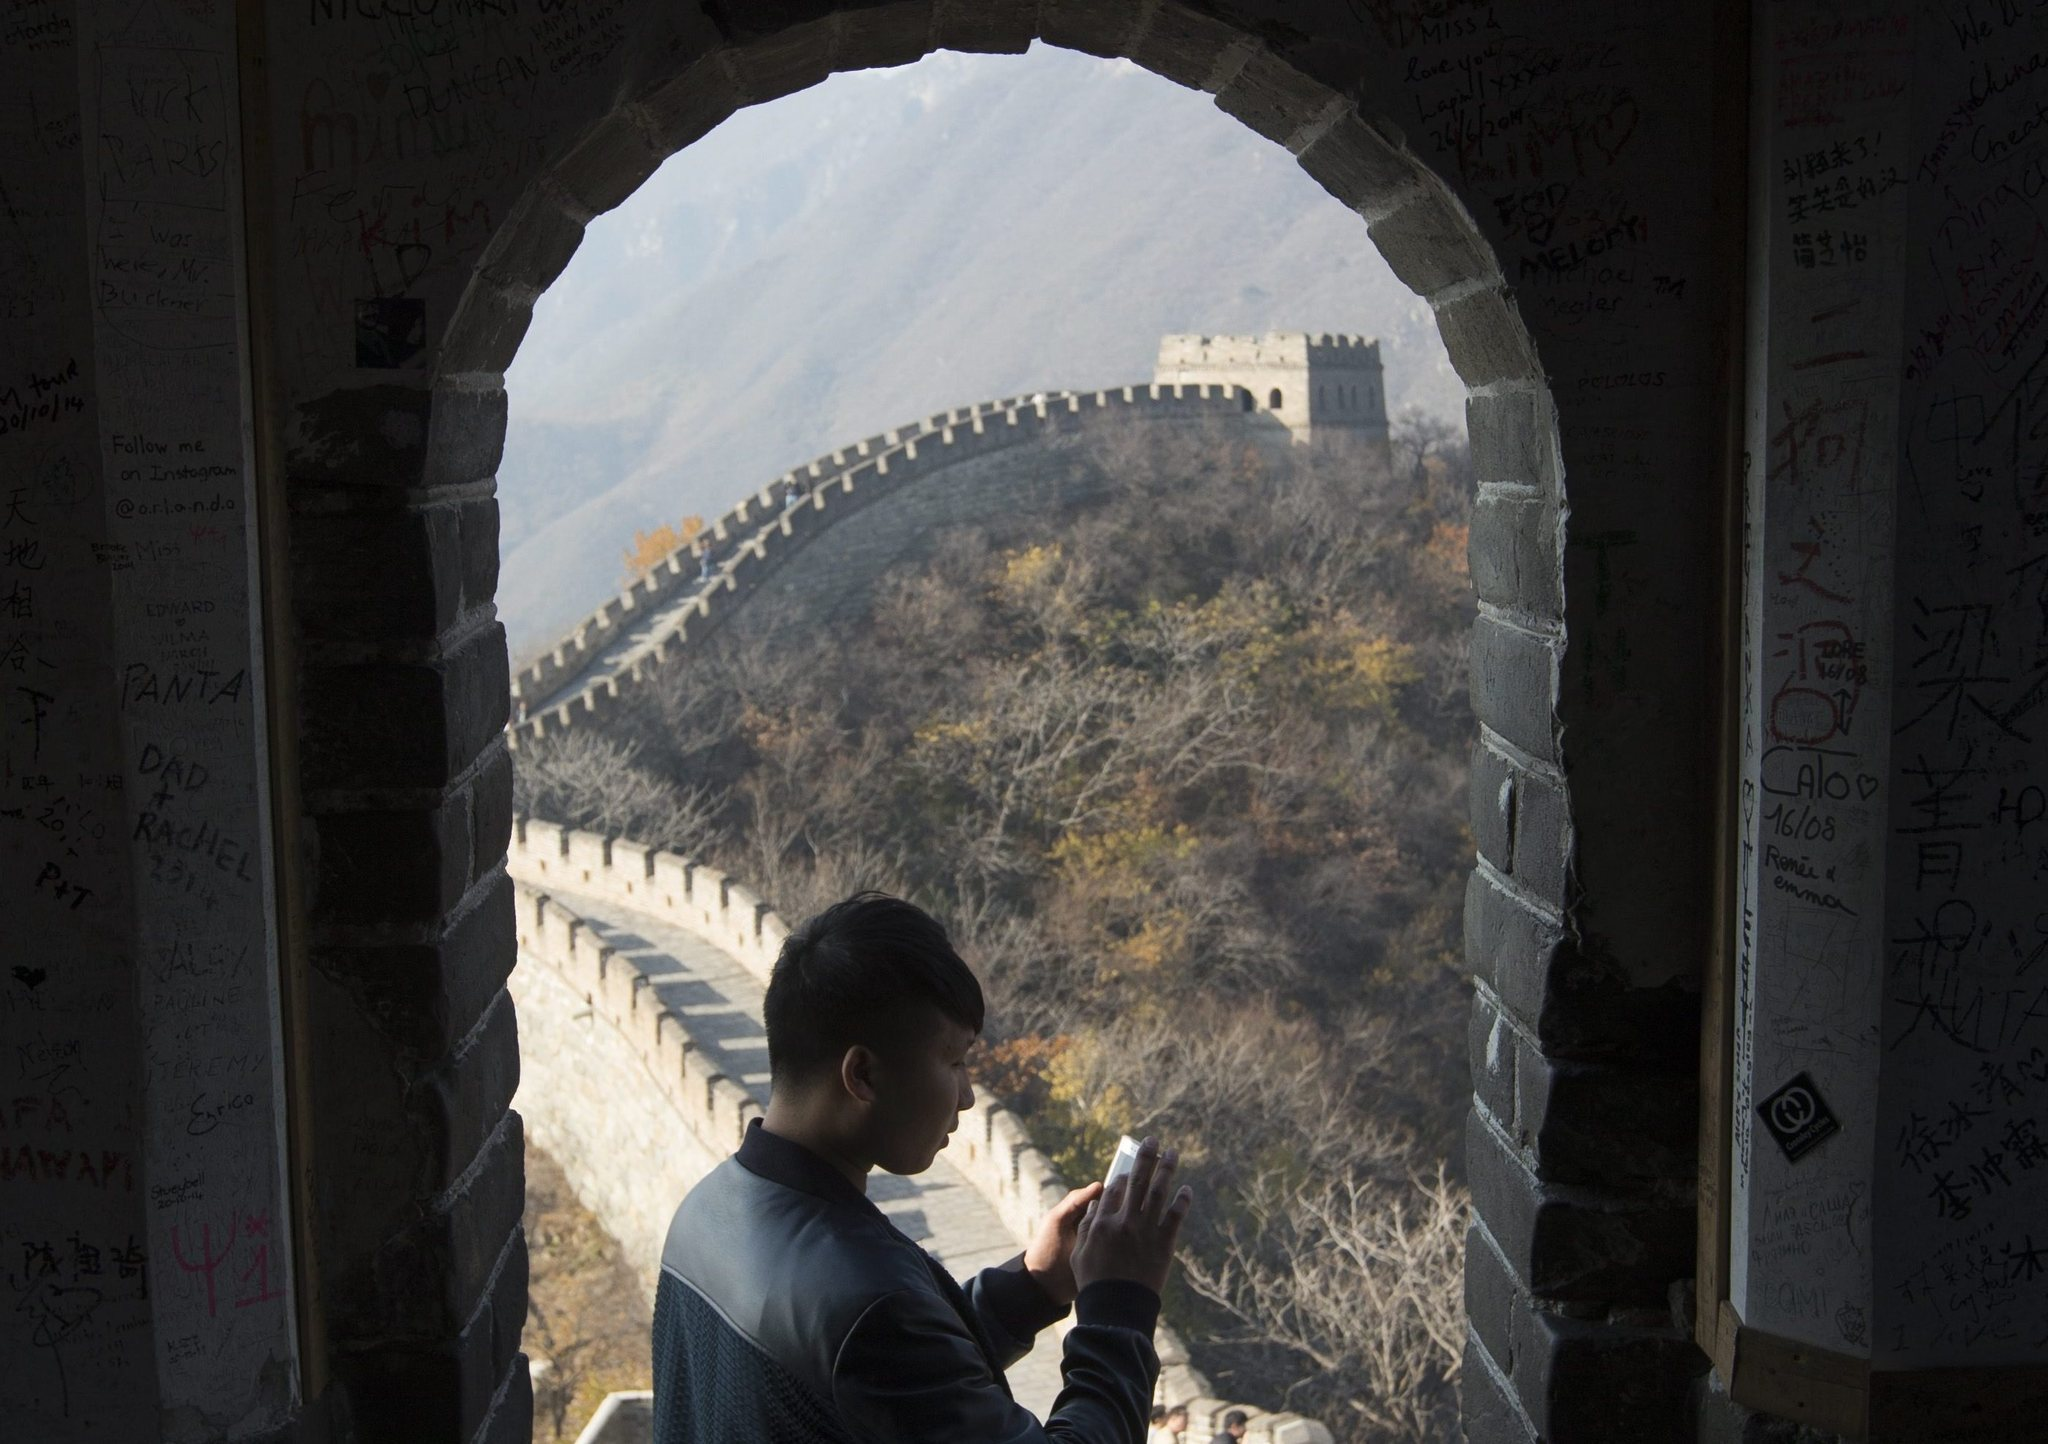 Routing around the Great Firewall of China